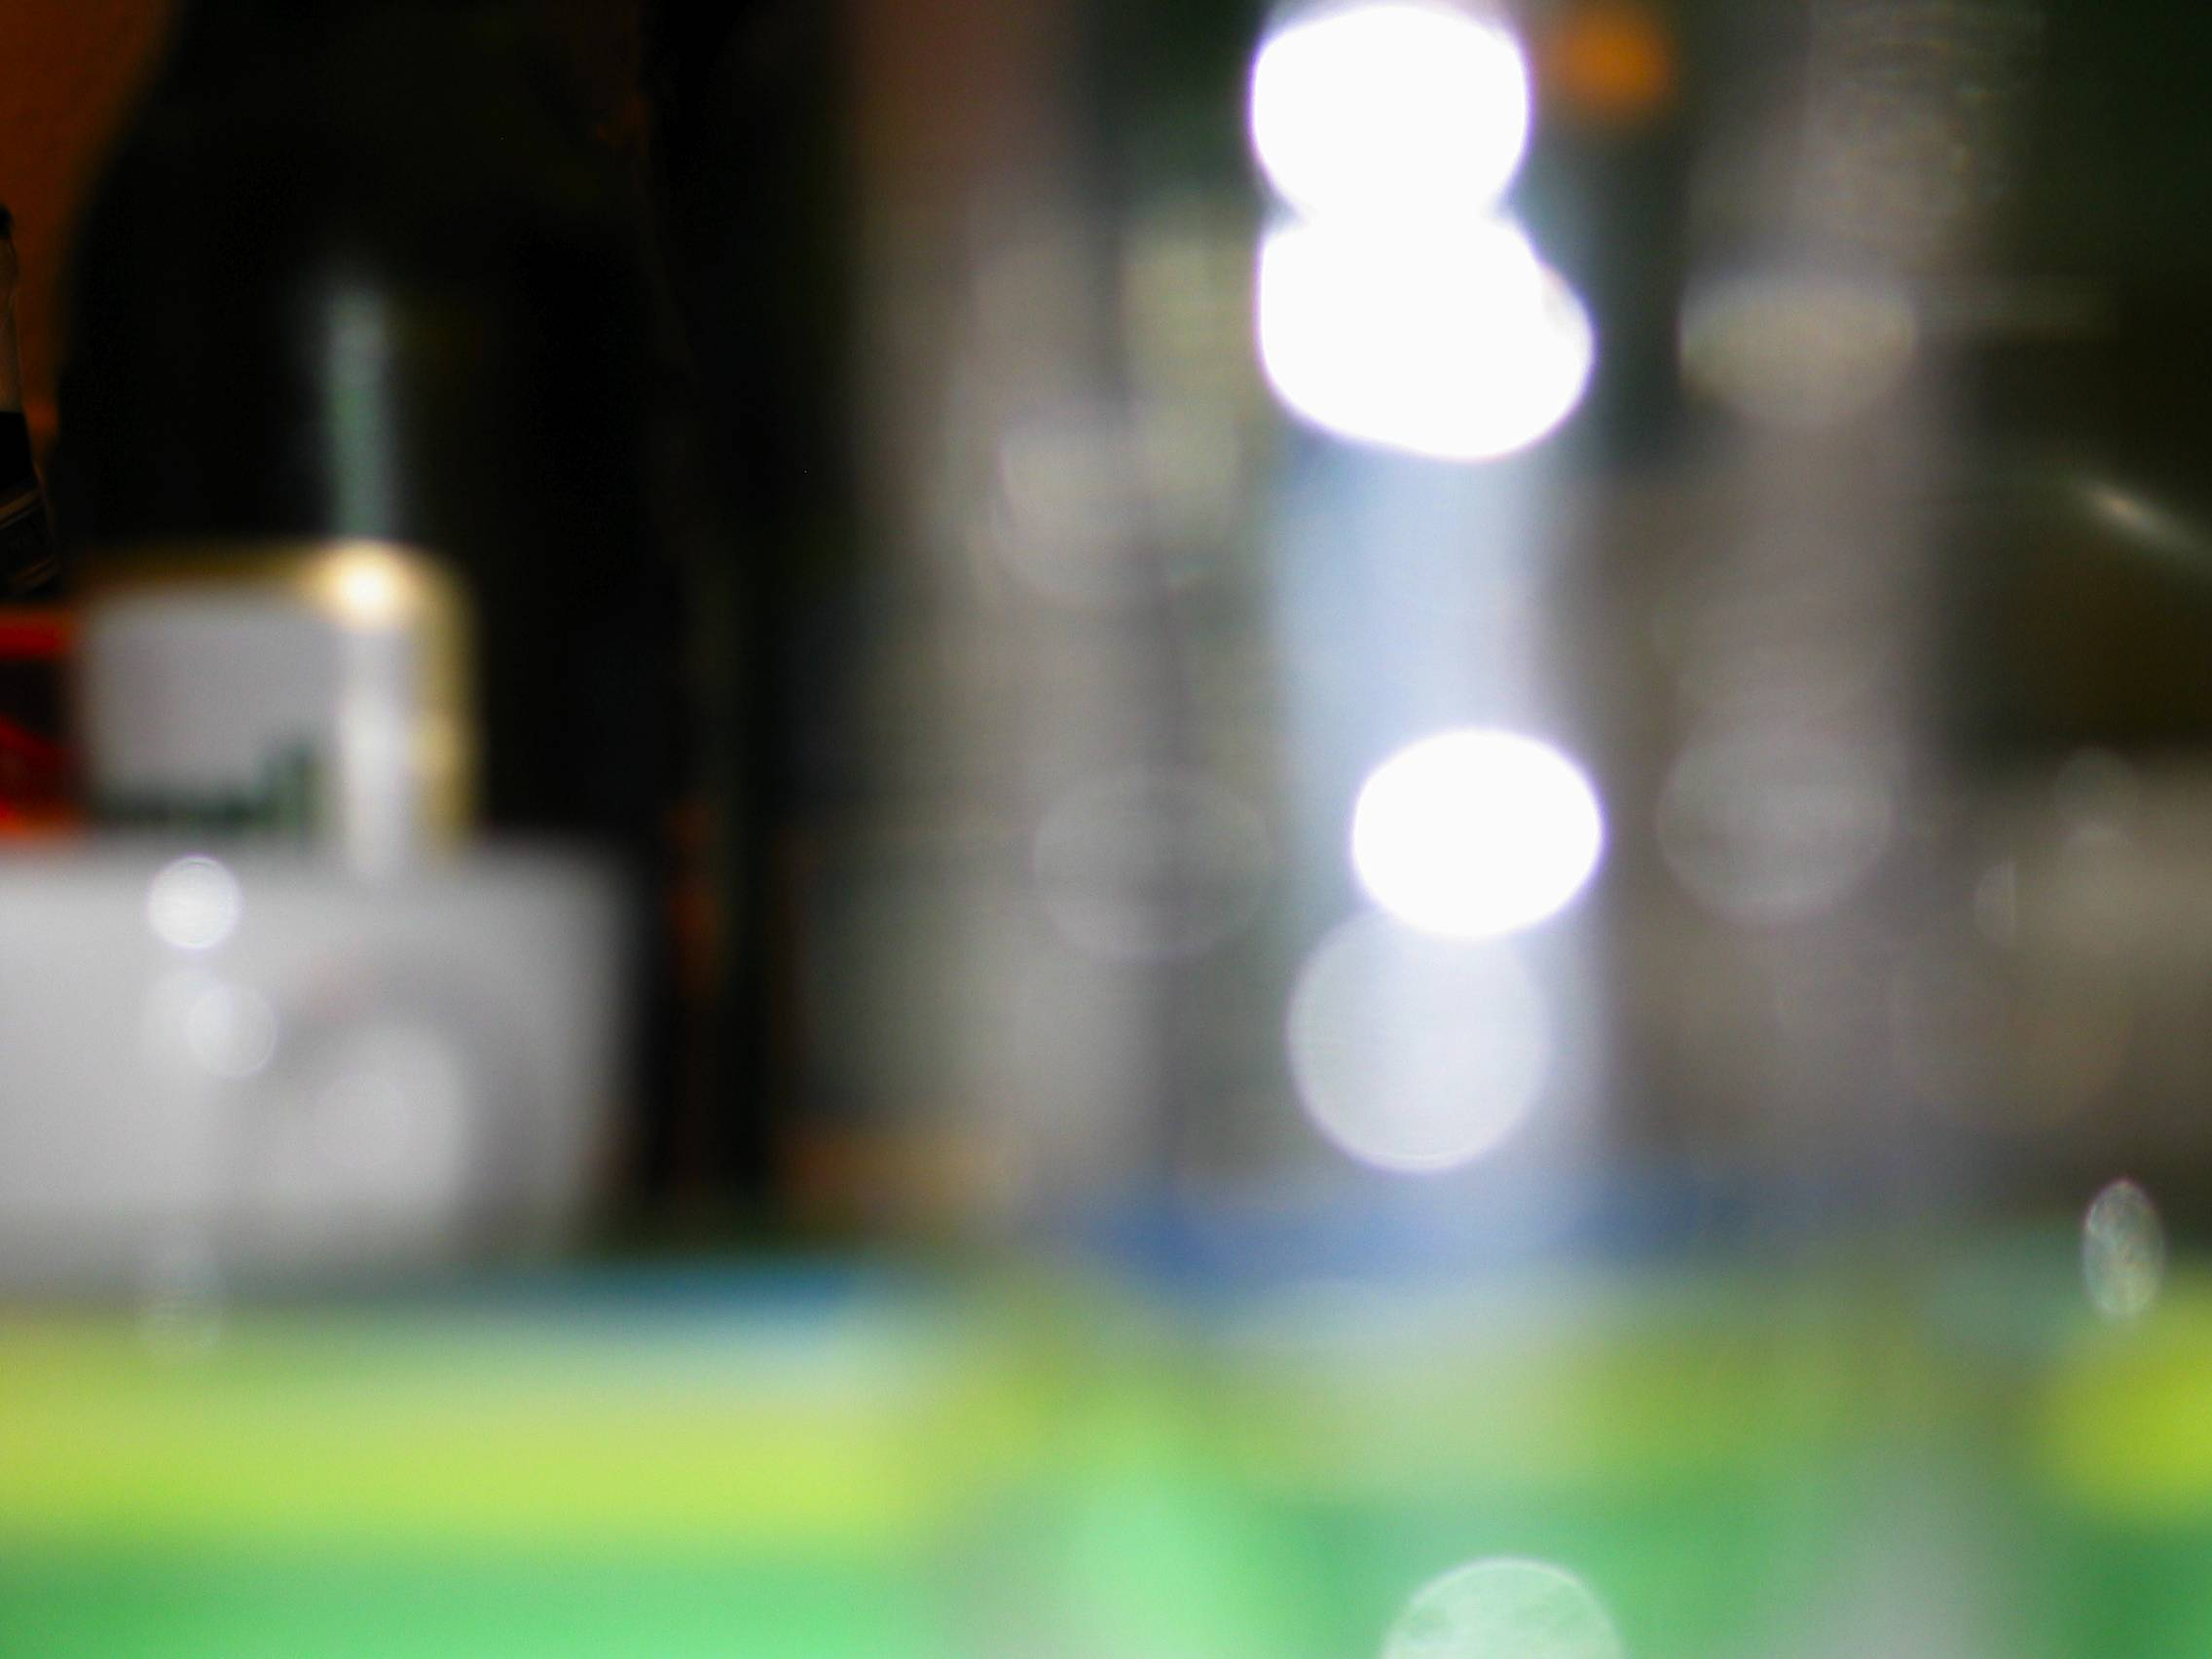 out of focus bottles